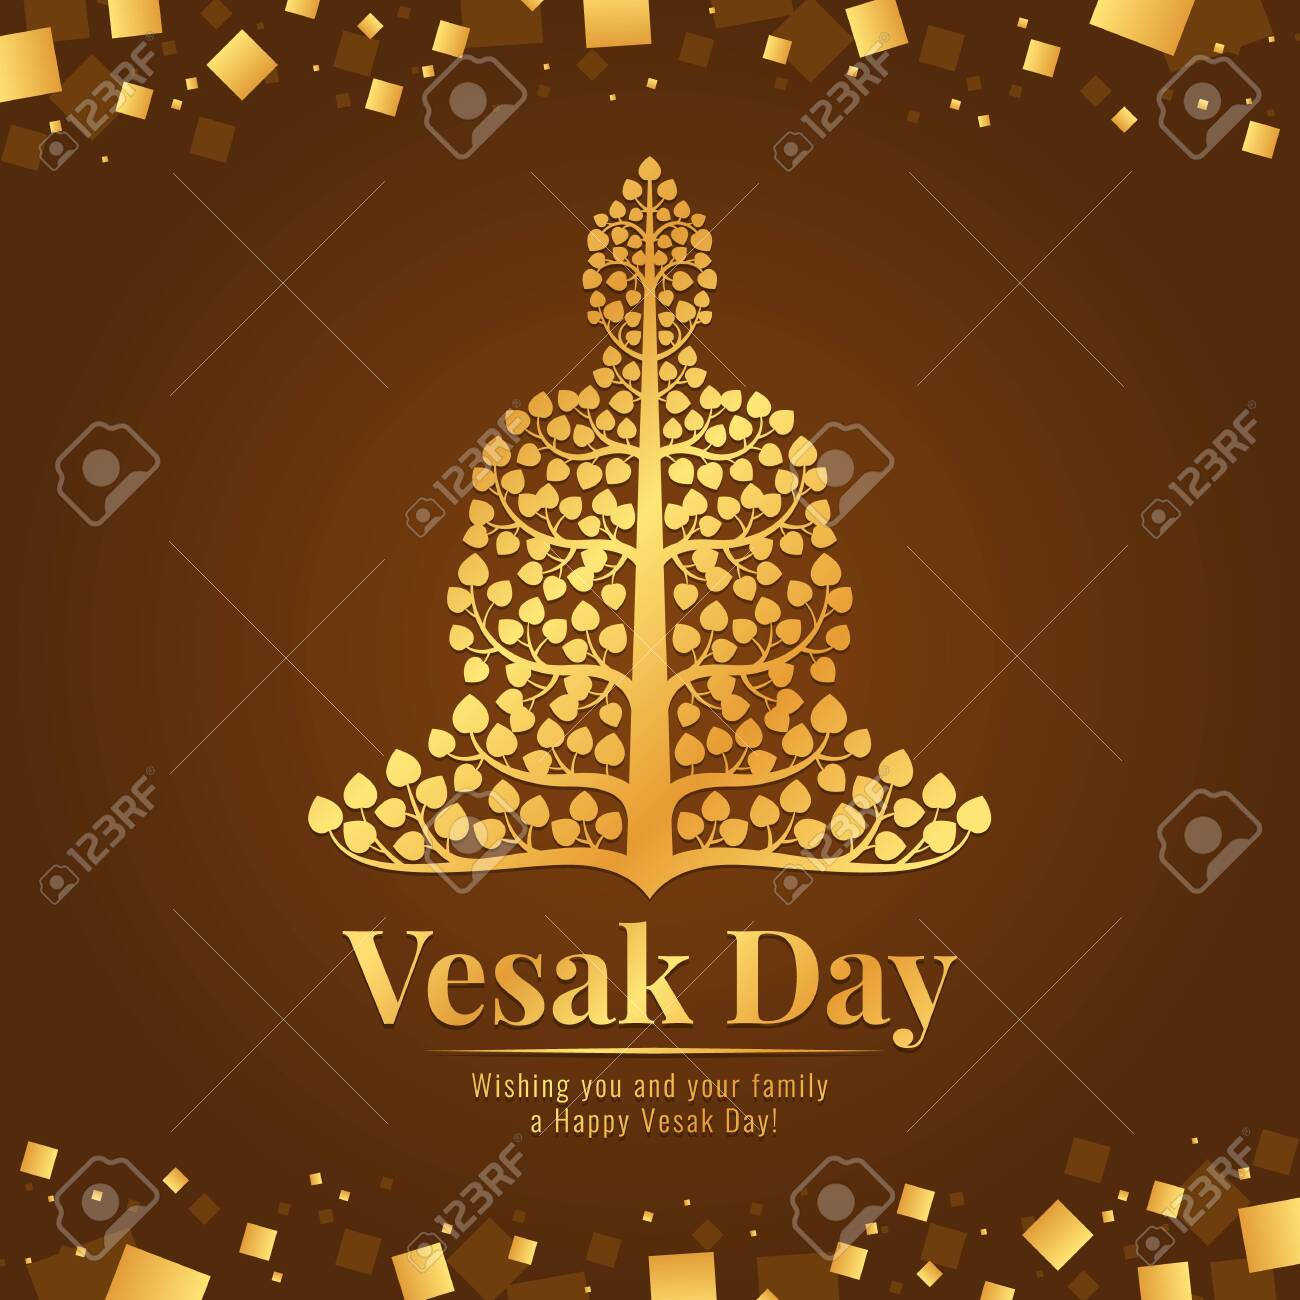 Vesak day banner gold Buddha with bodhi tree sign on abstract brown gold background design - 129420266